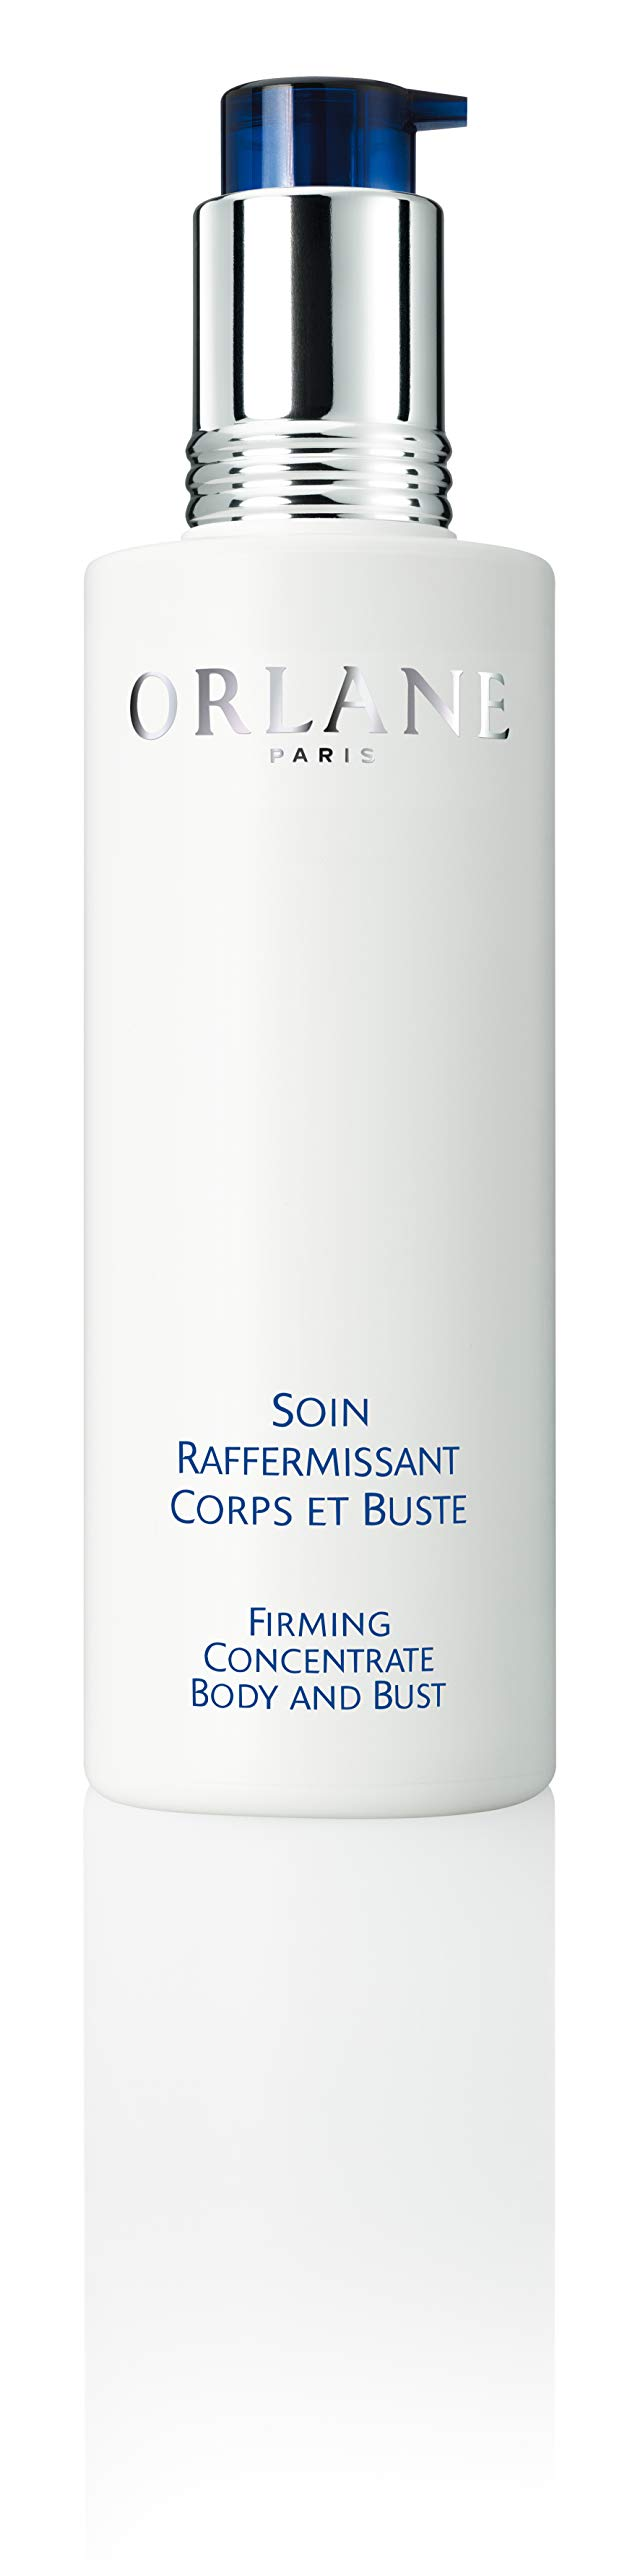 ORLANE PARIS Firming Concentrate Body and Bust, 8.3 oz